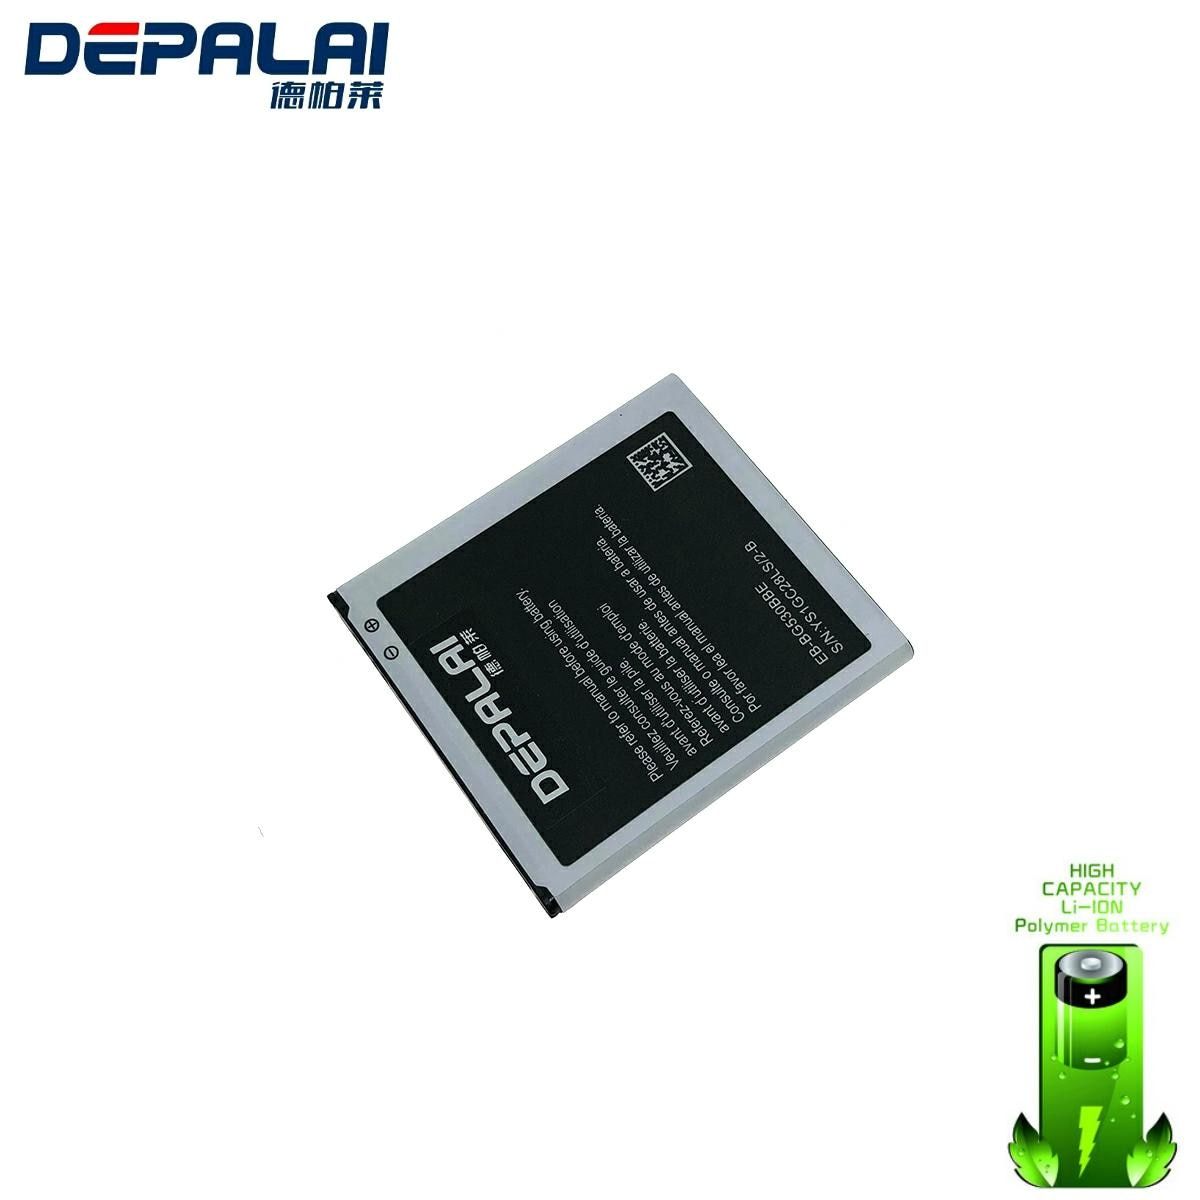 high quality Battery For Samsung Grand Prime G530 G531 G5308W J3(2016) J3(2018) J320 On5 j327 EB-BG530BBC EB-BG531BBE 2600mAh